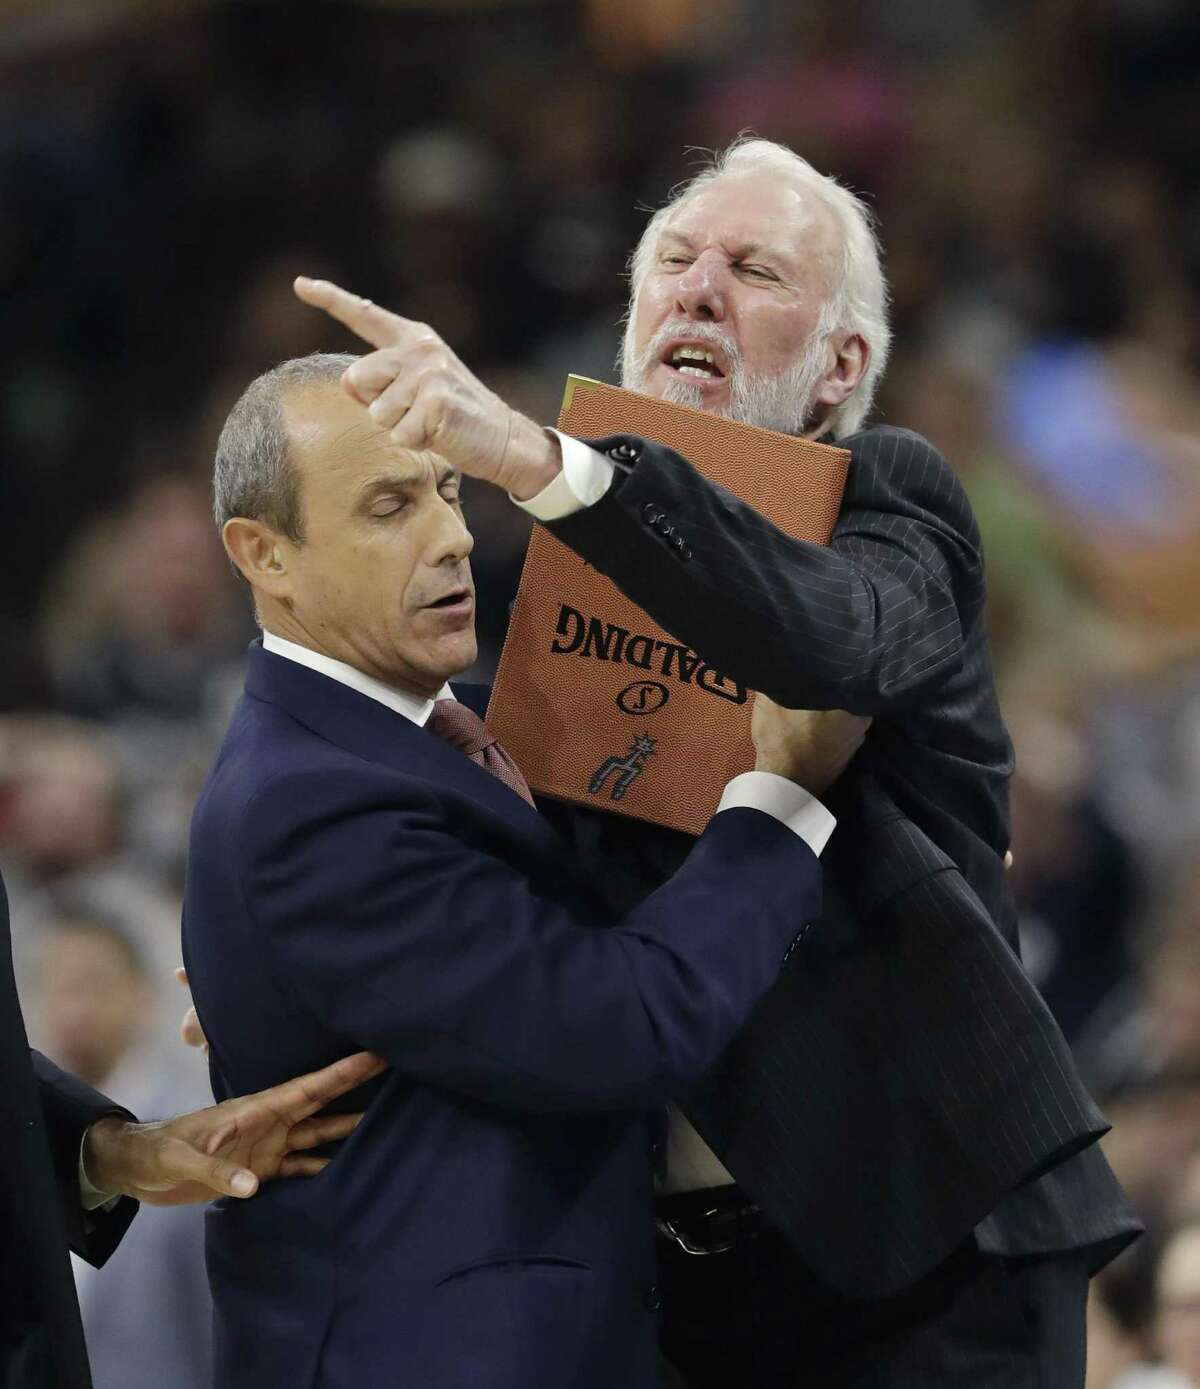 Spurs coach Gregg Popovich is held back by assistant coach Ettore Messina as he argues an official's call during the first half against the Los Angeles Clippers on Nov. 5, 2016, in San Antonio.